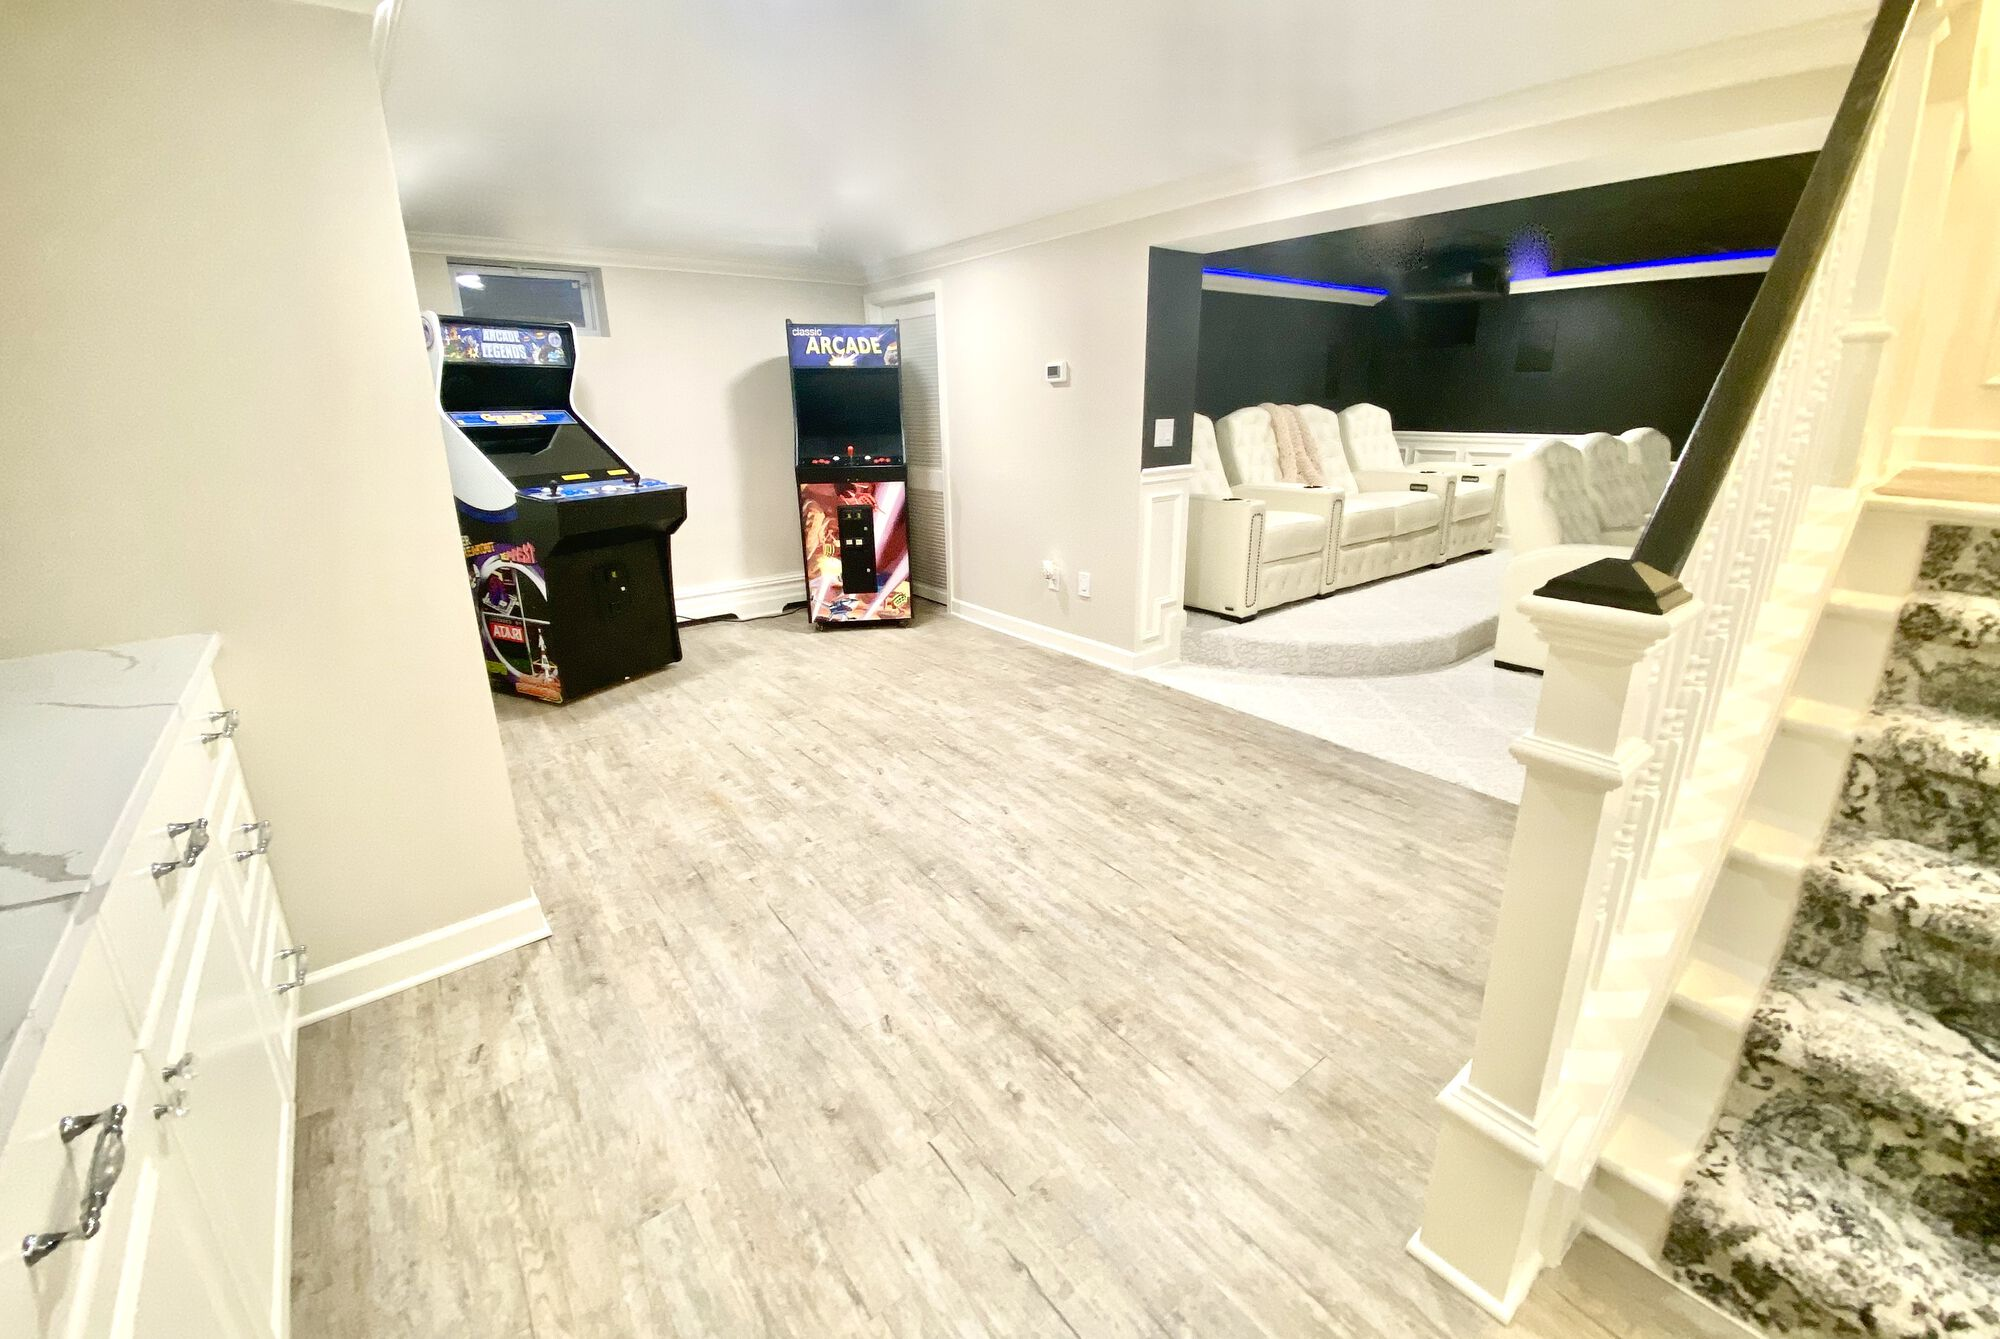 Basement Remodel with Theater in Upper Saddle River, Bergen County NJ